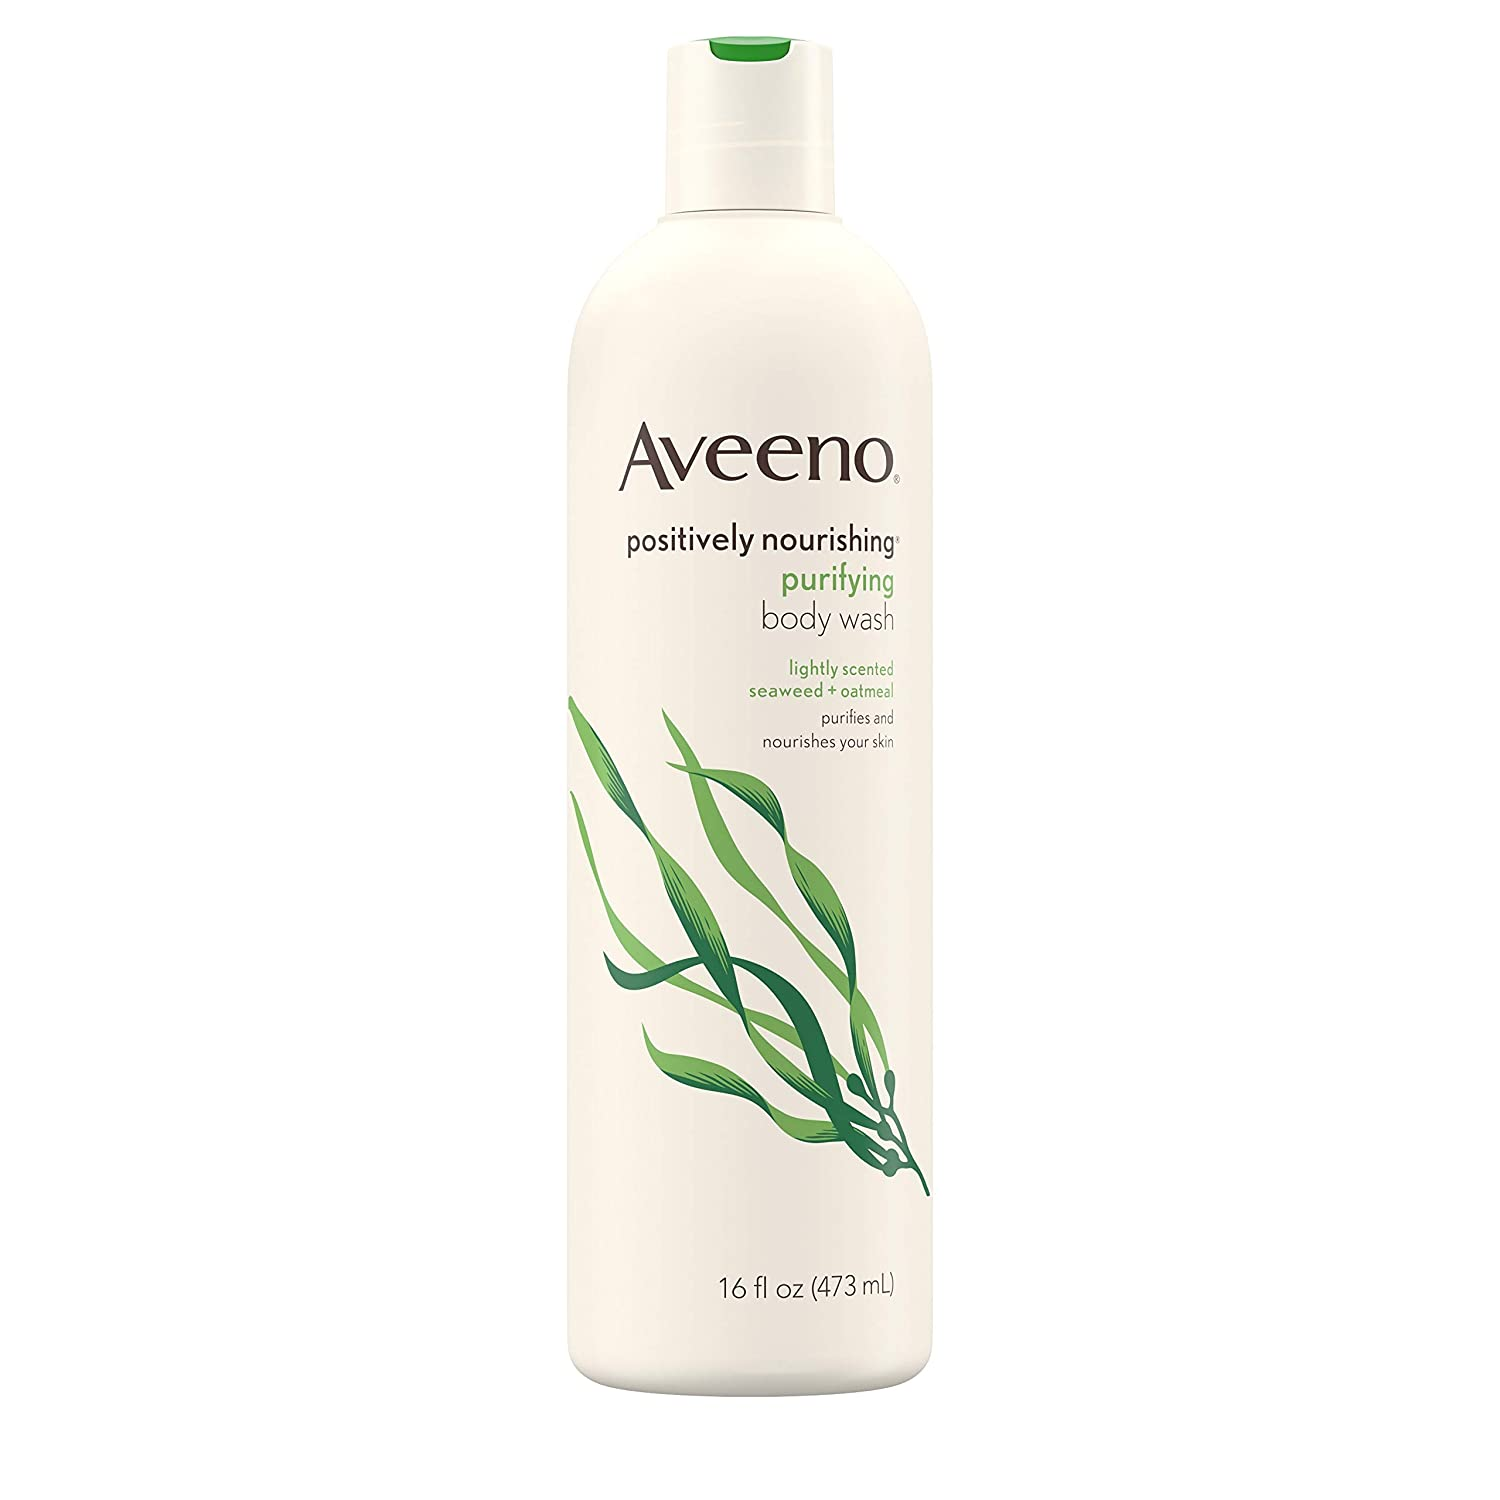 Aveeno Positively Nourishing Purifying Body Wash with Seaweed & Soothing Oatmeal, Lightly Scented Daily Moisturizing Body Wash, 16 fl. oz